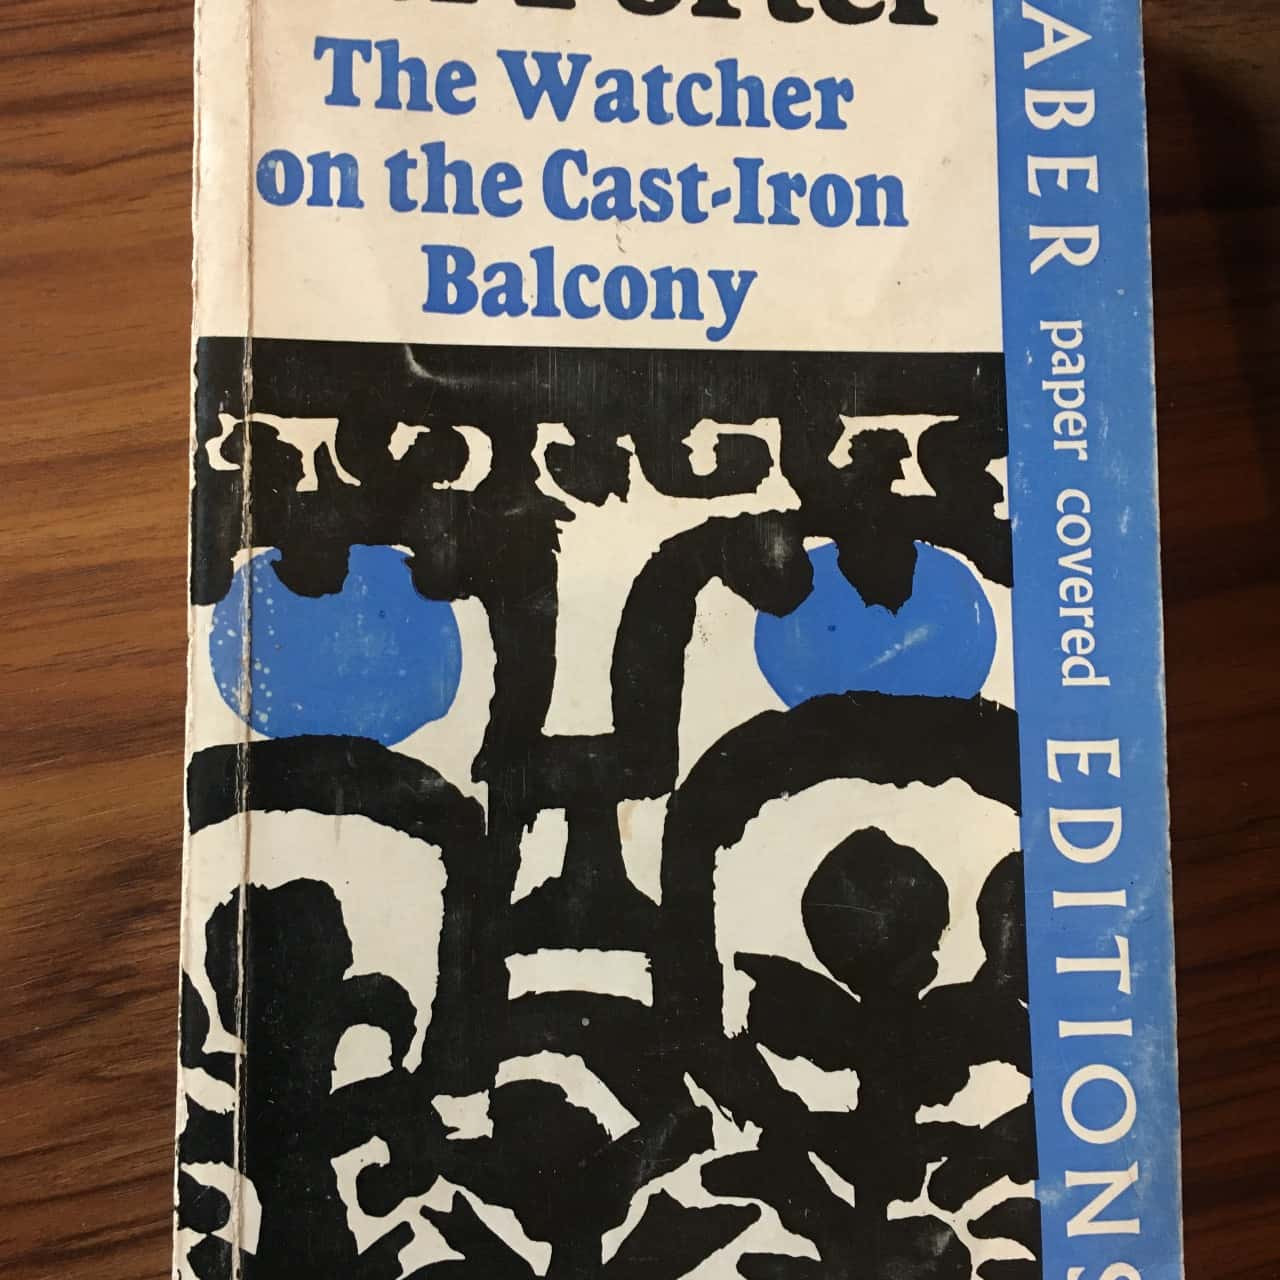 The Watcher on the cast-iron Balcony by Hal Porter